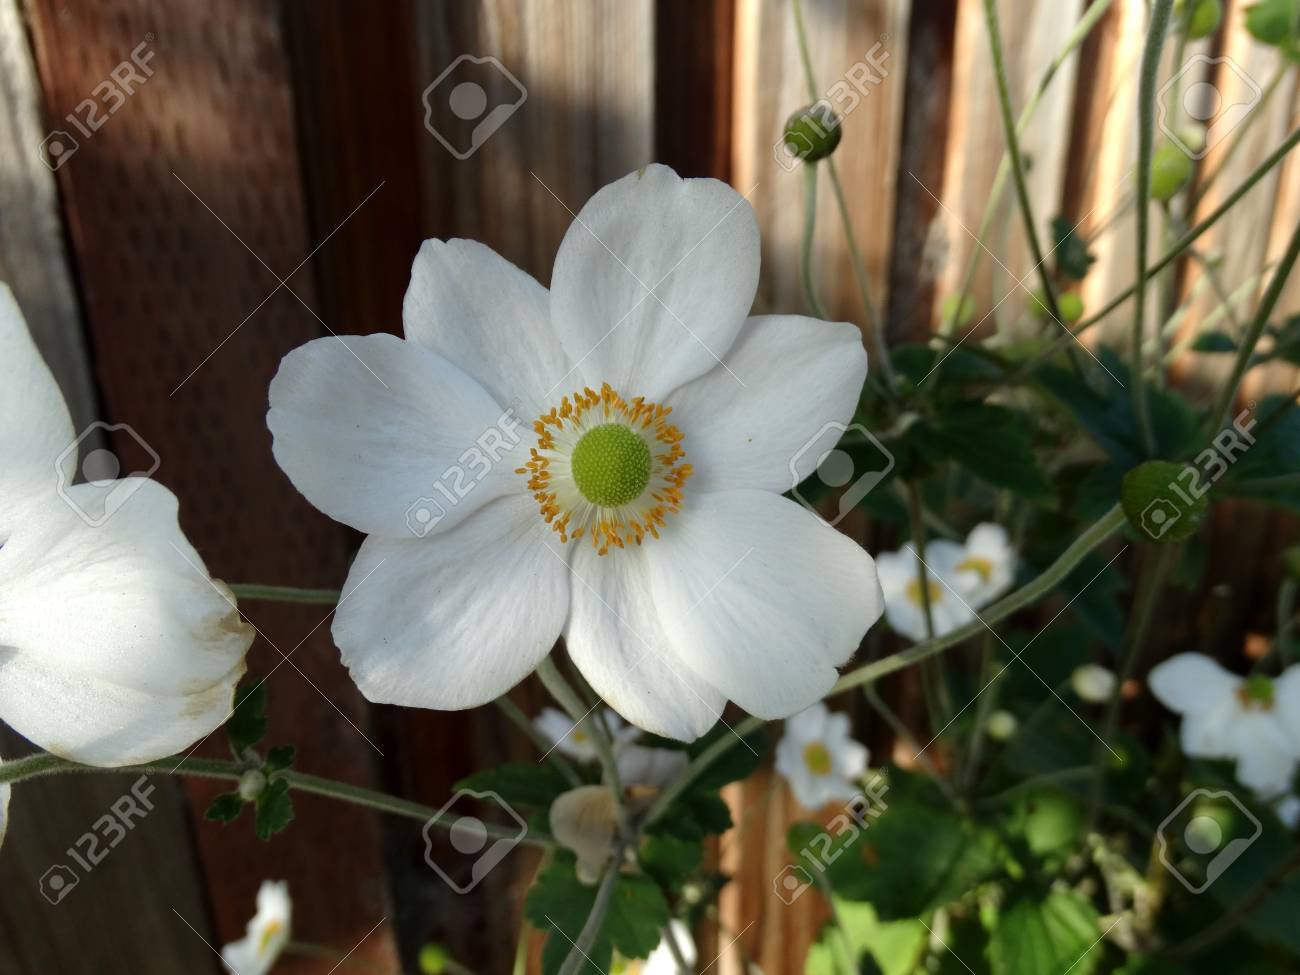 Anemone hybrida honorine jobert cultivar perennial up to 2 anemone hybrida honorine jobert cultivar perennial up to 2 m tall with ternate leaves mightylinksfo